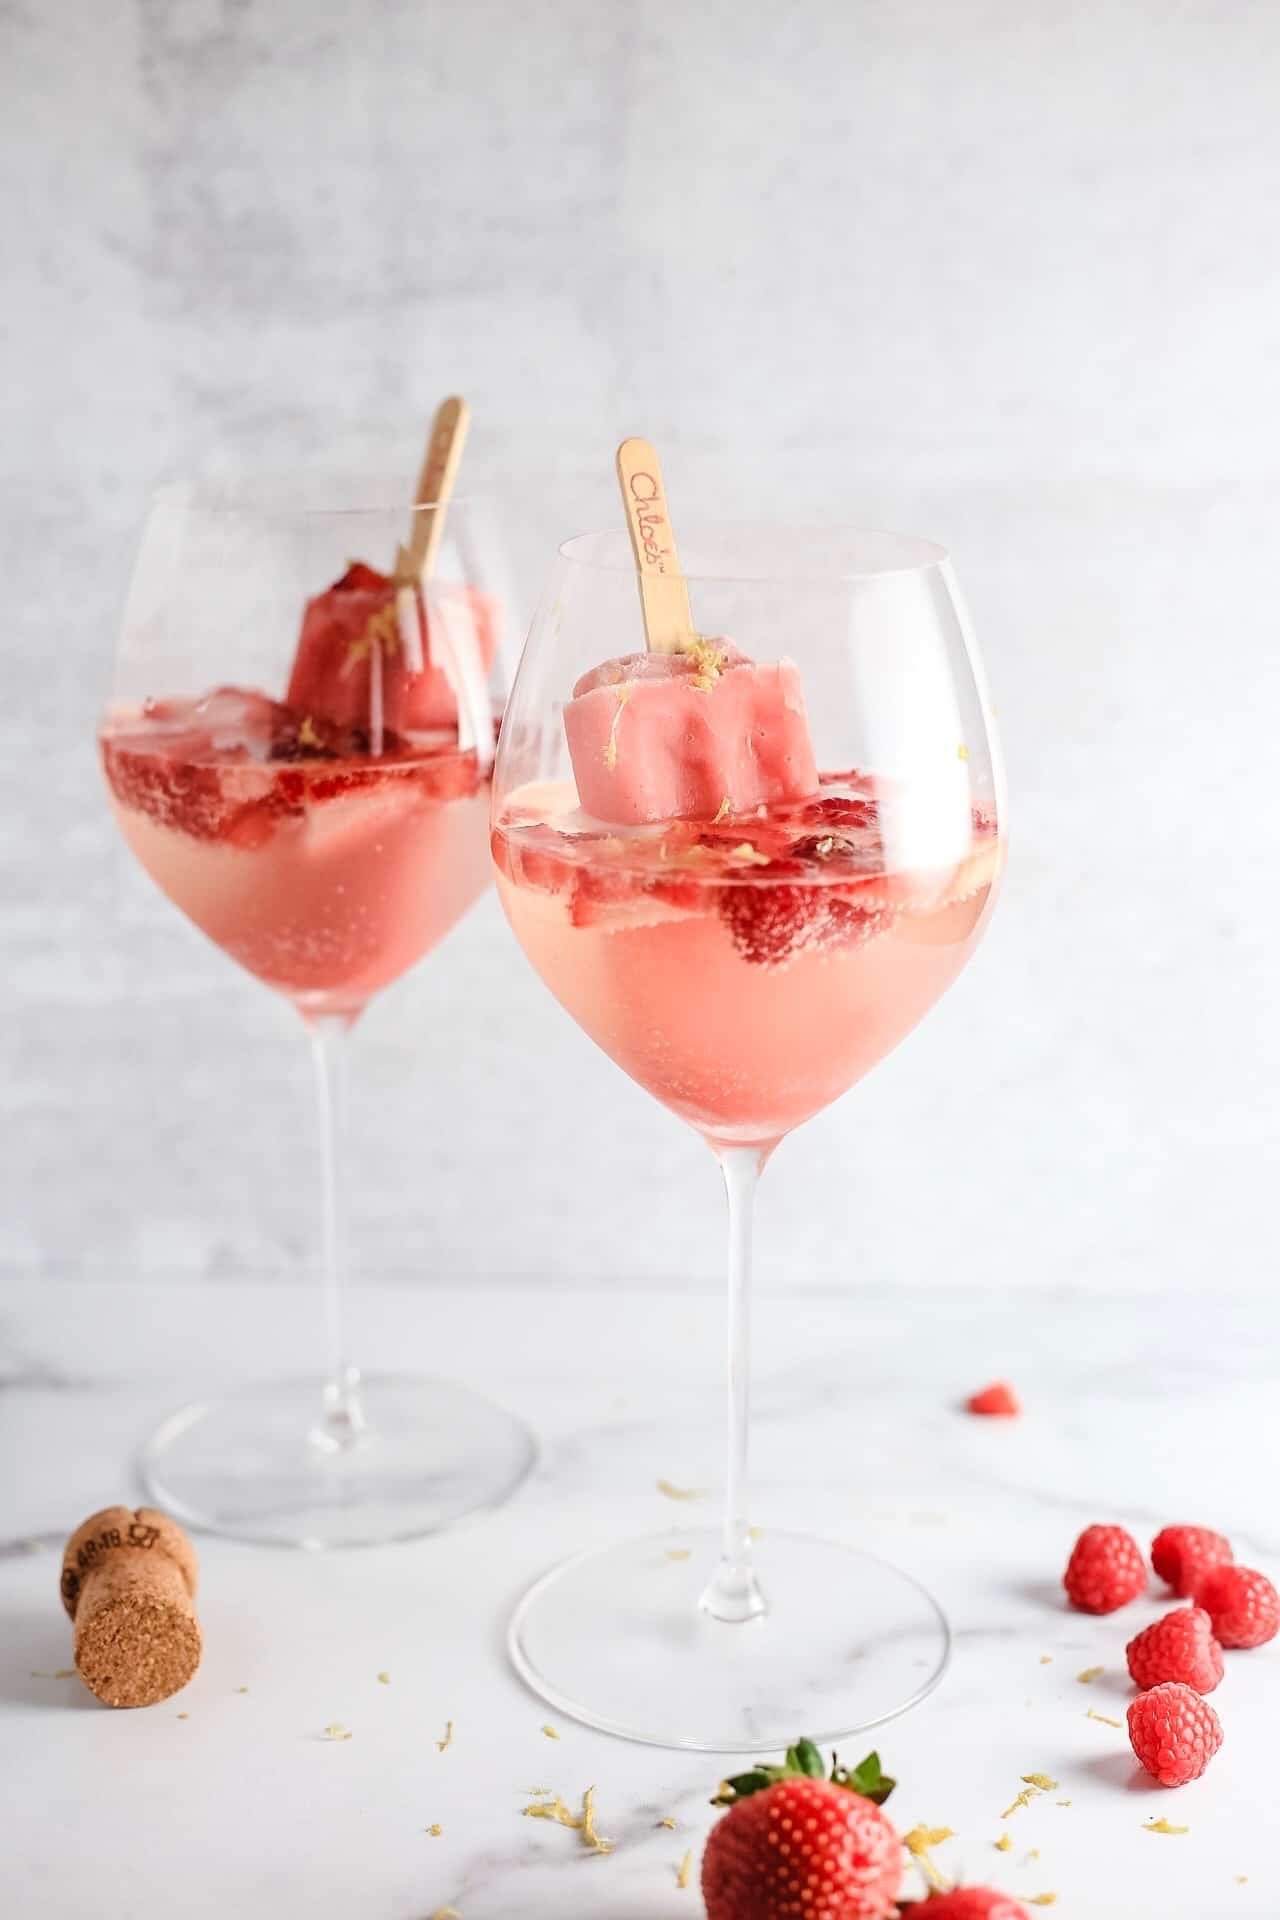 Two large wine glasses filled with prosecco, berries and strawberry popsicles